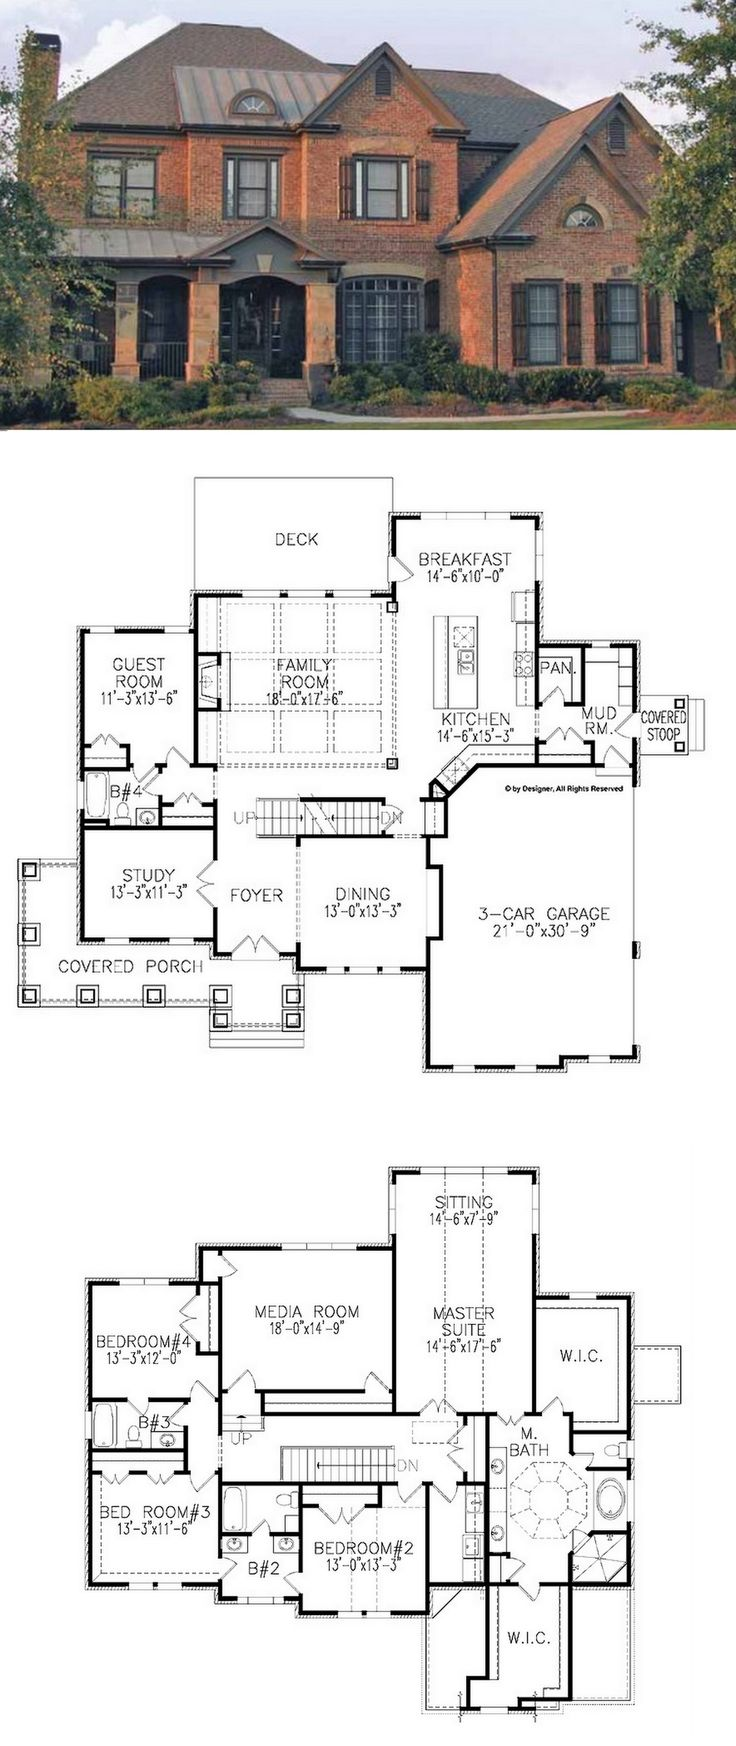 Best 25 floor plans ideas on pinterest house floor plans house layouts and house plans - Bedrooms houseplans ...